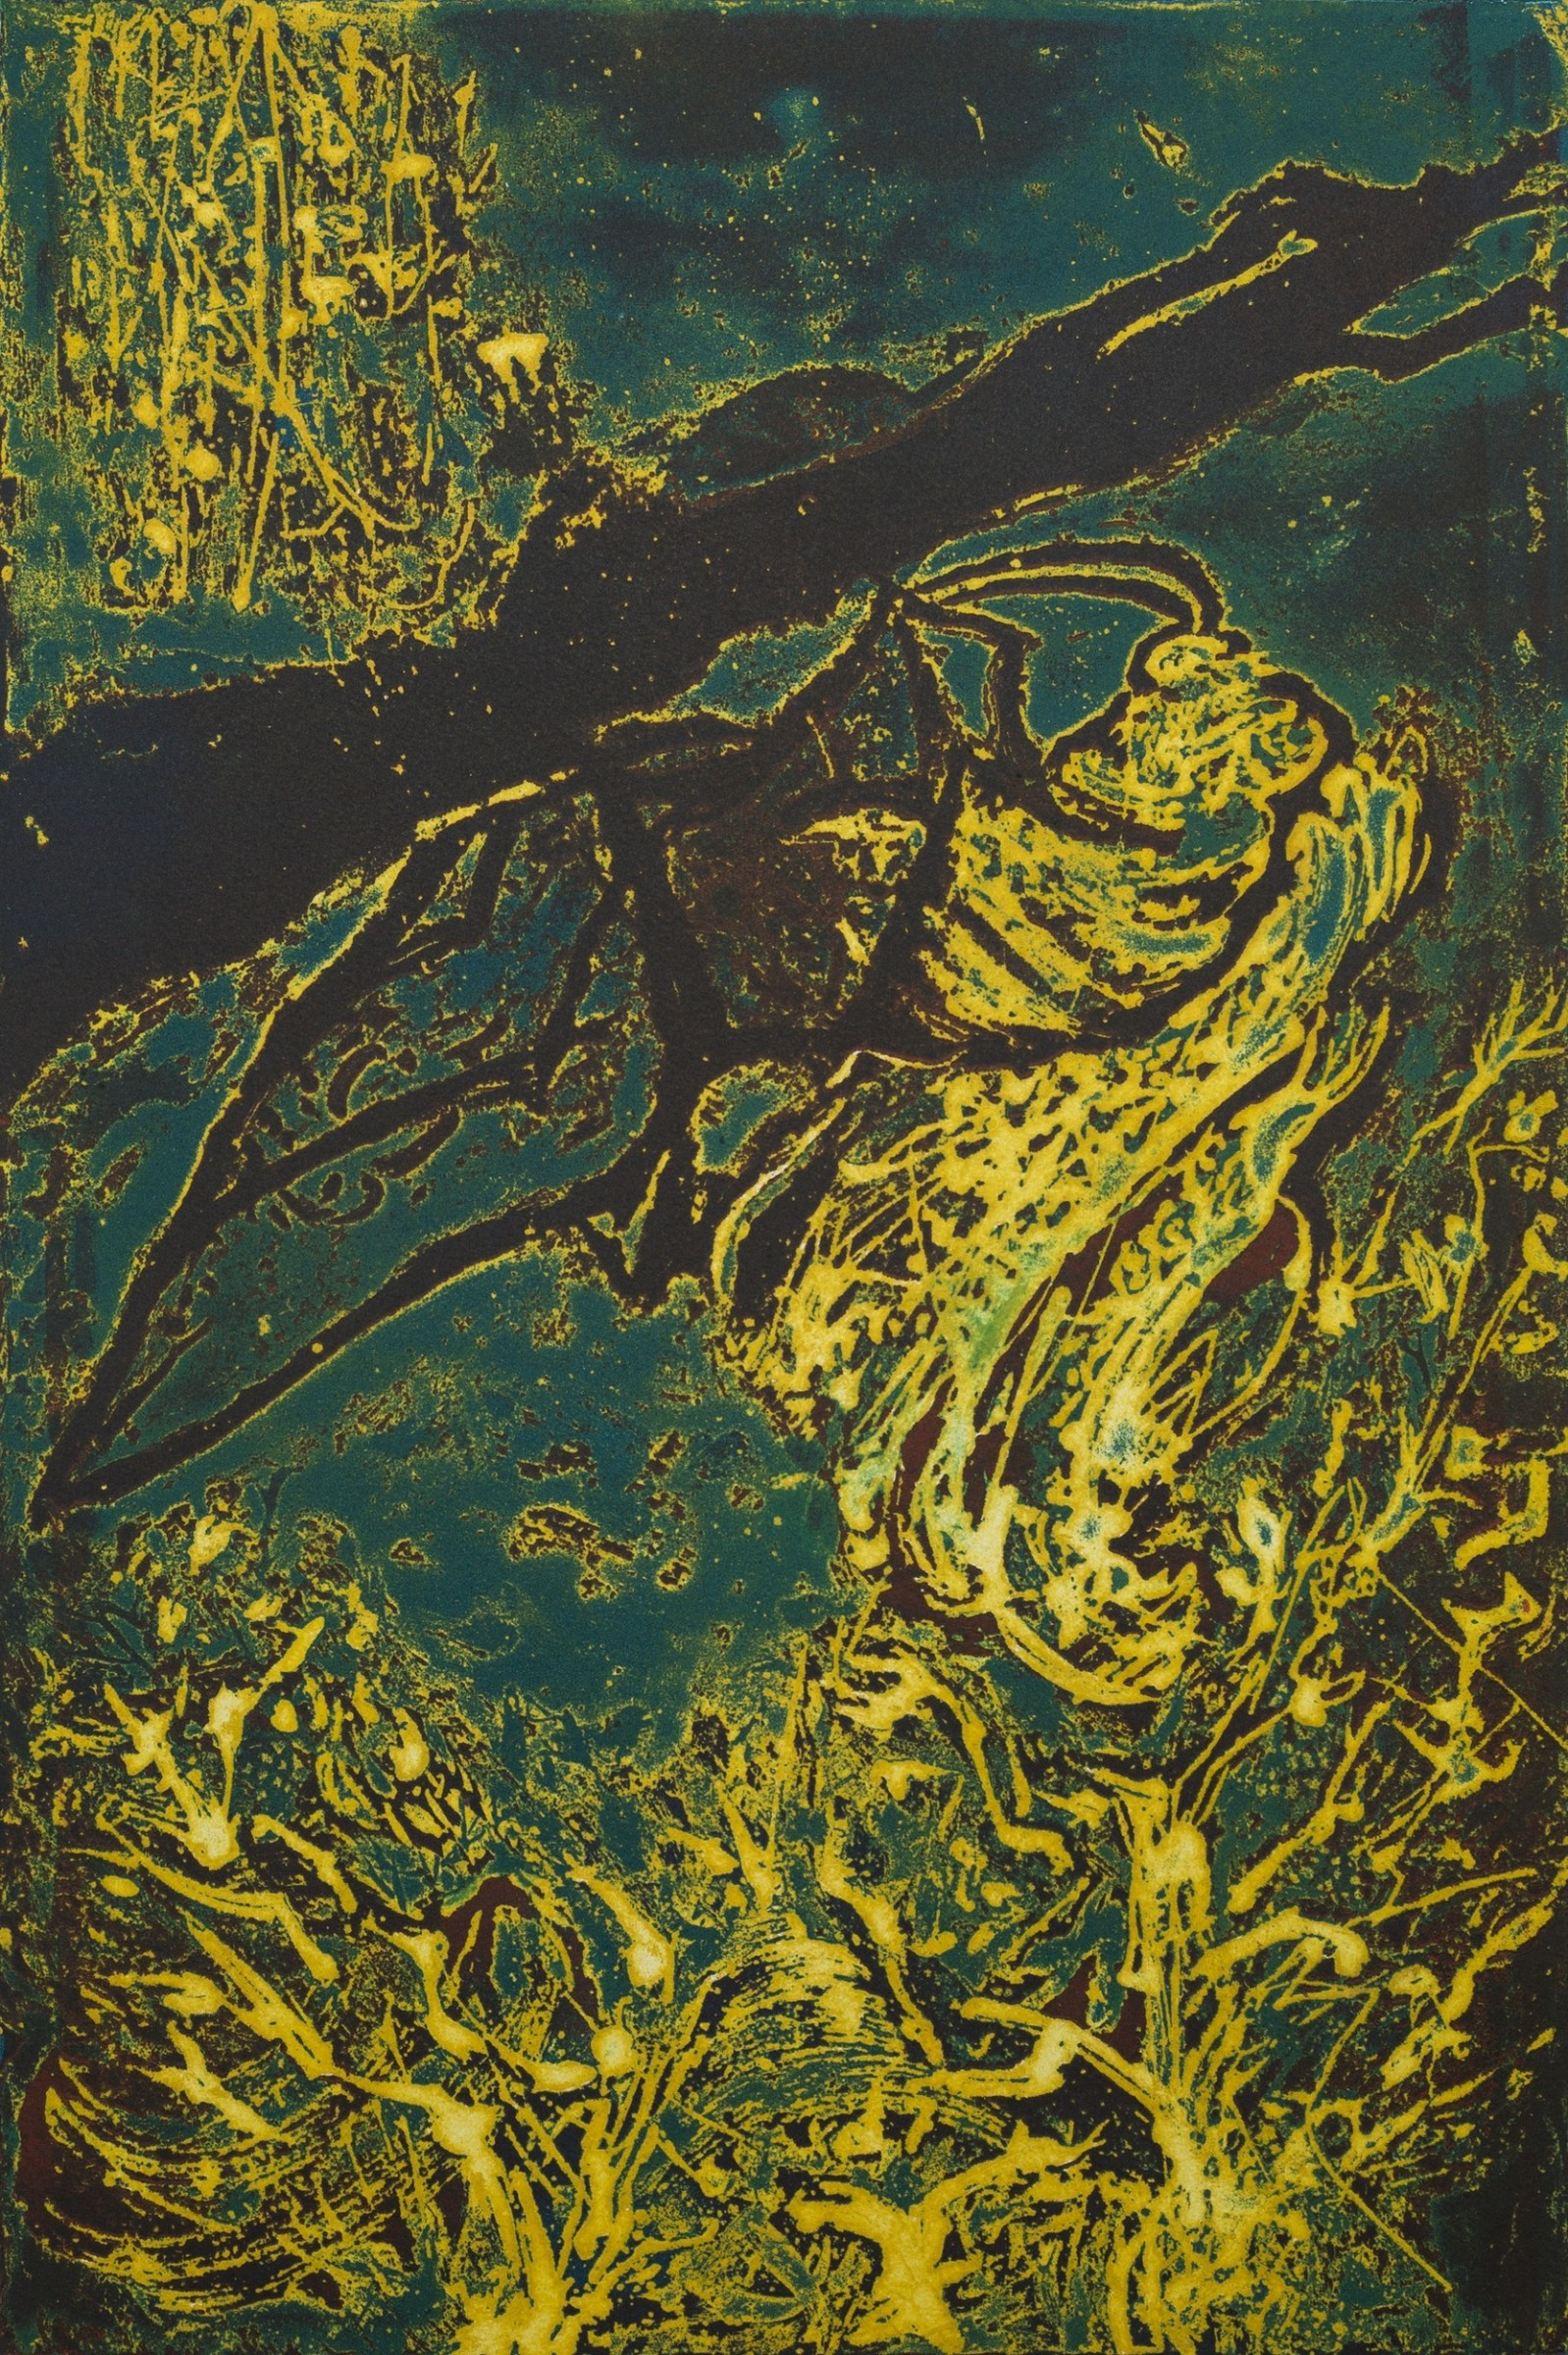 """<span class=""""link fancybox-details-link""""><a href=""""/exhibitions/17/works/image_standalone838/"""">View Detail Page</a></span><p><strong>Yangpeng Zhou</strong></p><p>Metamorphosis</p><p>etching</p><p>53 x 74cm</p><p>£1200 framed</p>"""